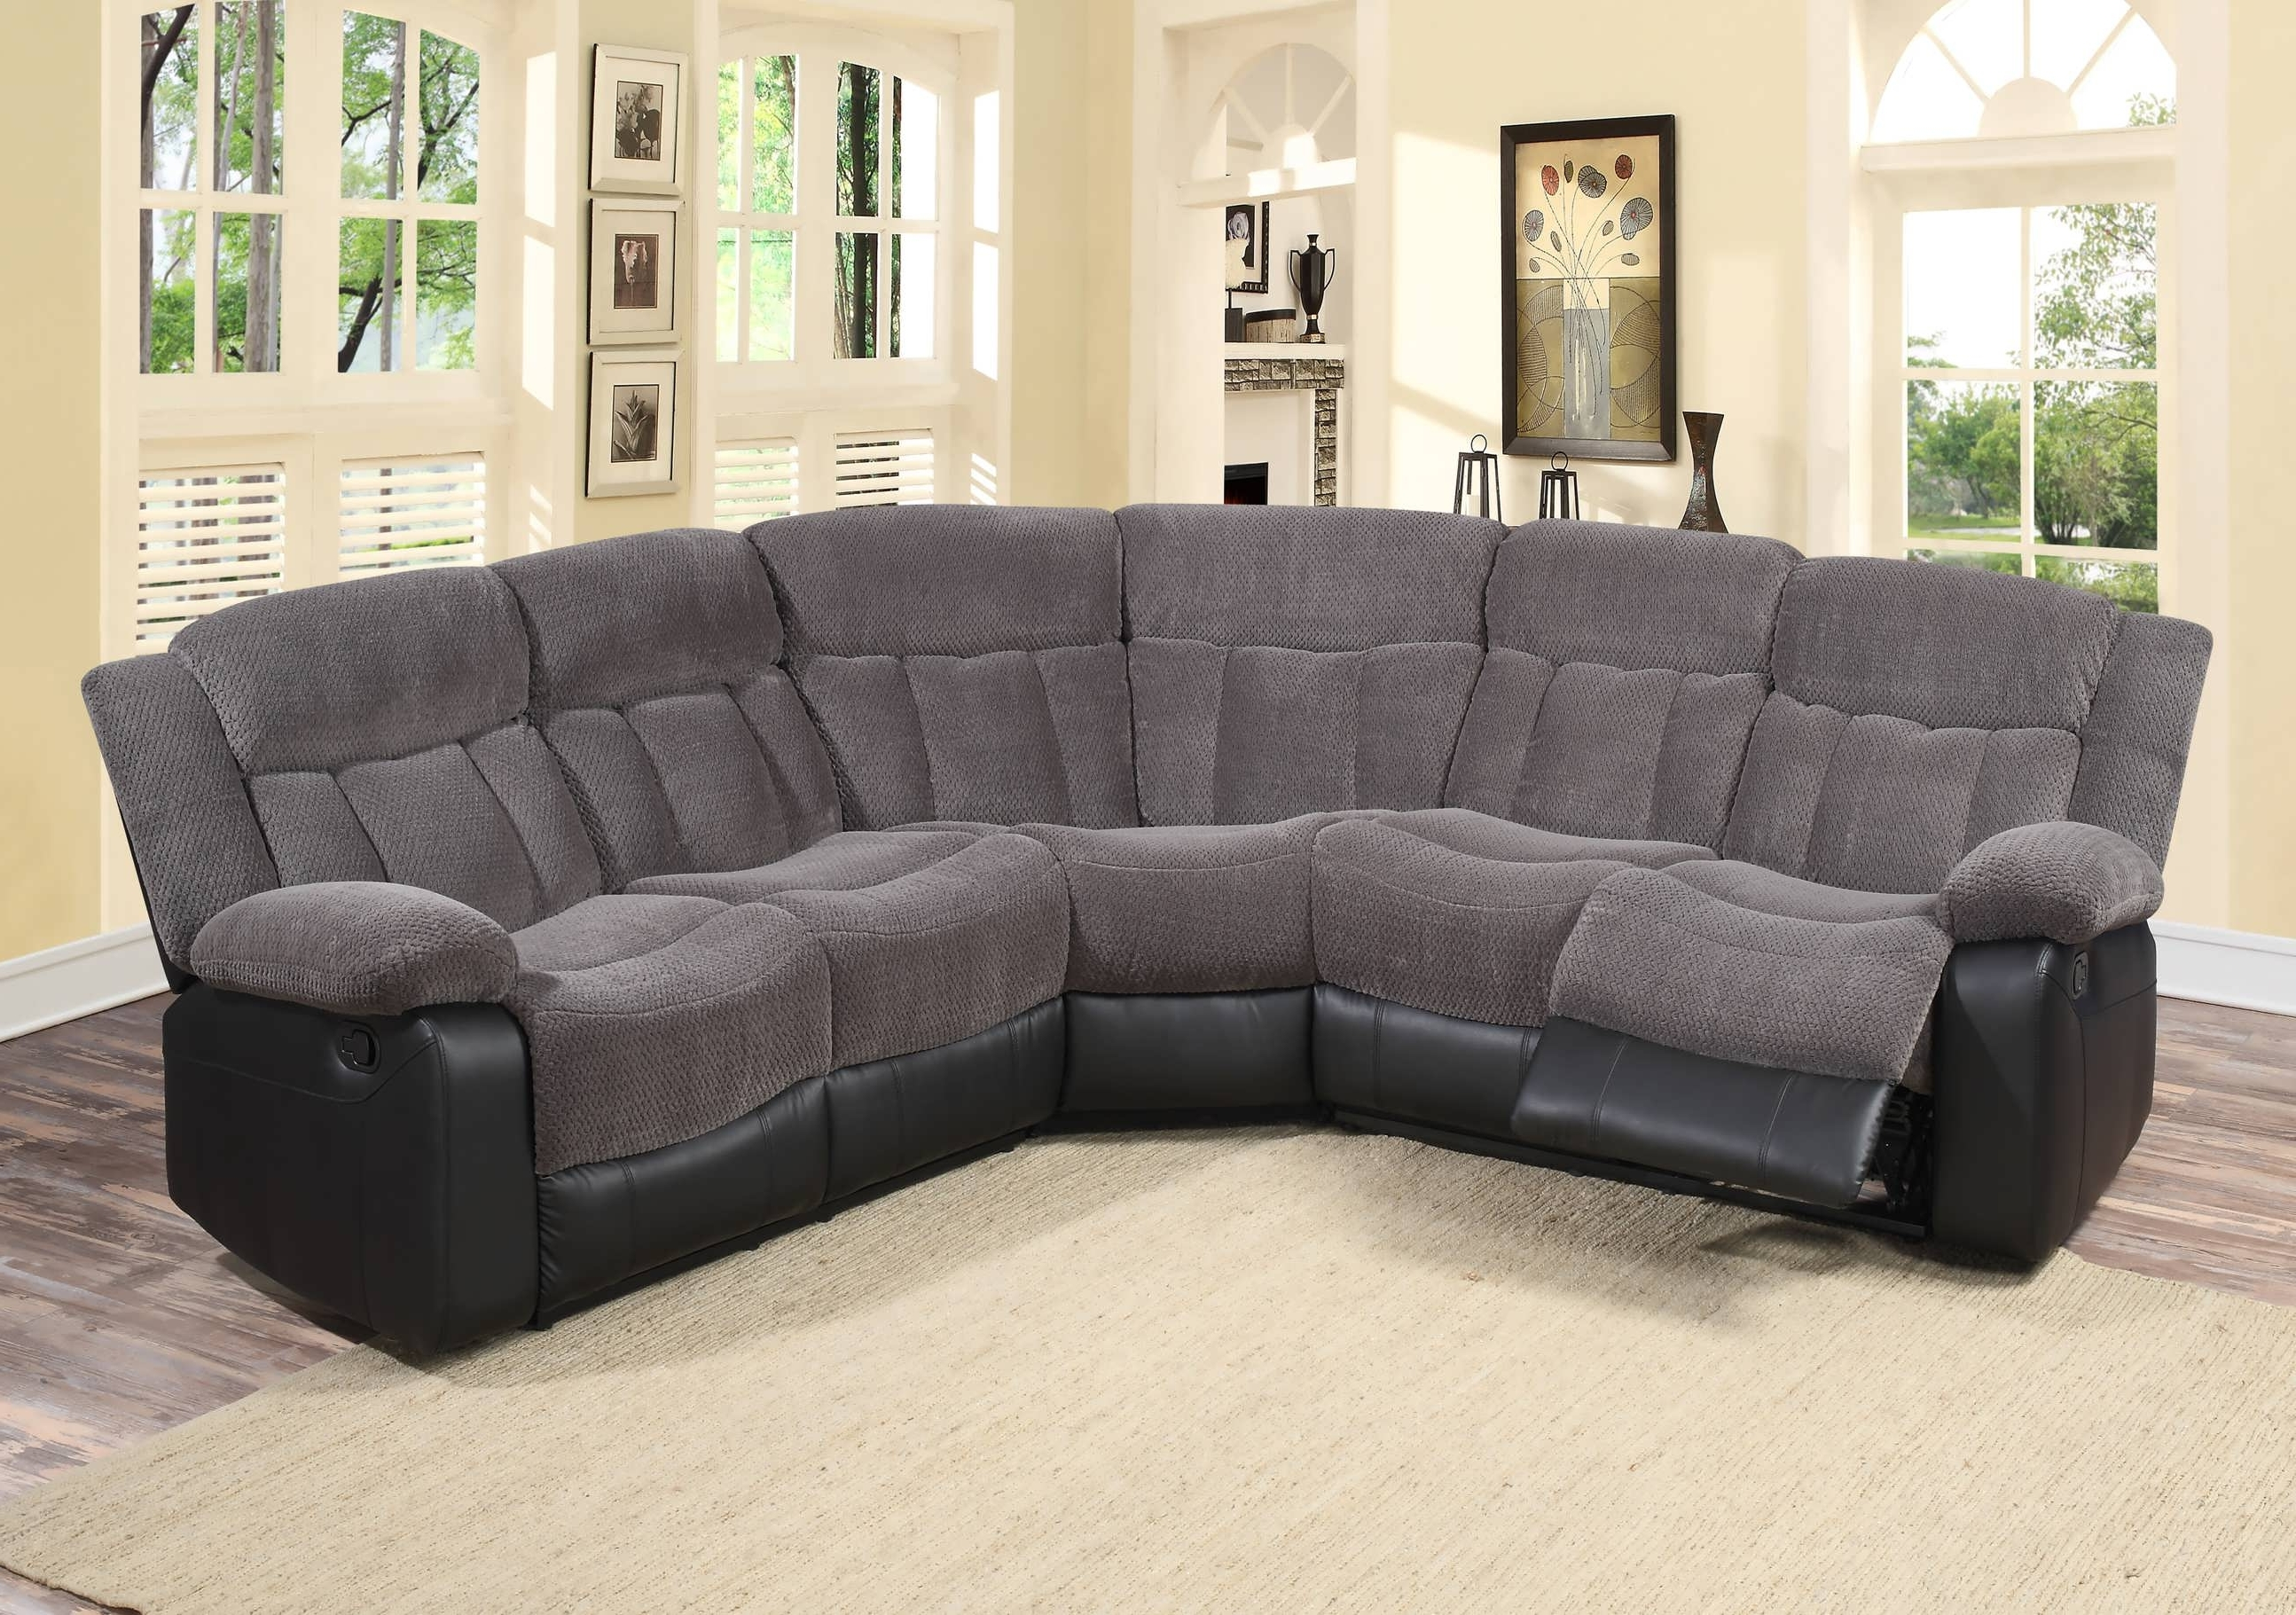 Most Recent Sofa : U Shaped Sectional Leather Sectionals For Sale Cheap For Reclining Sectionals With Chaise (View 4 of 15)